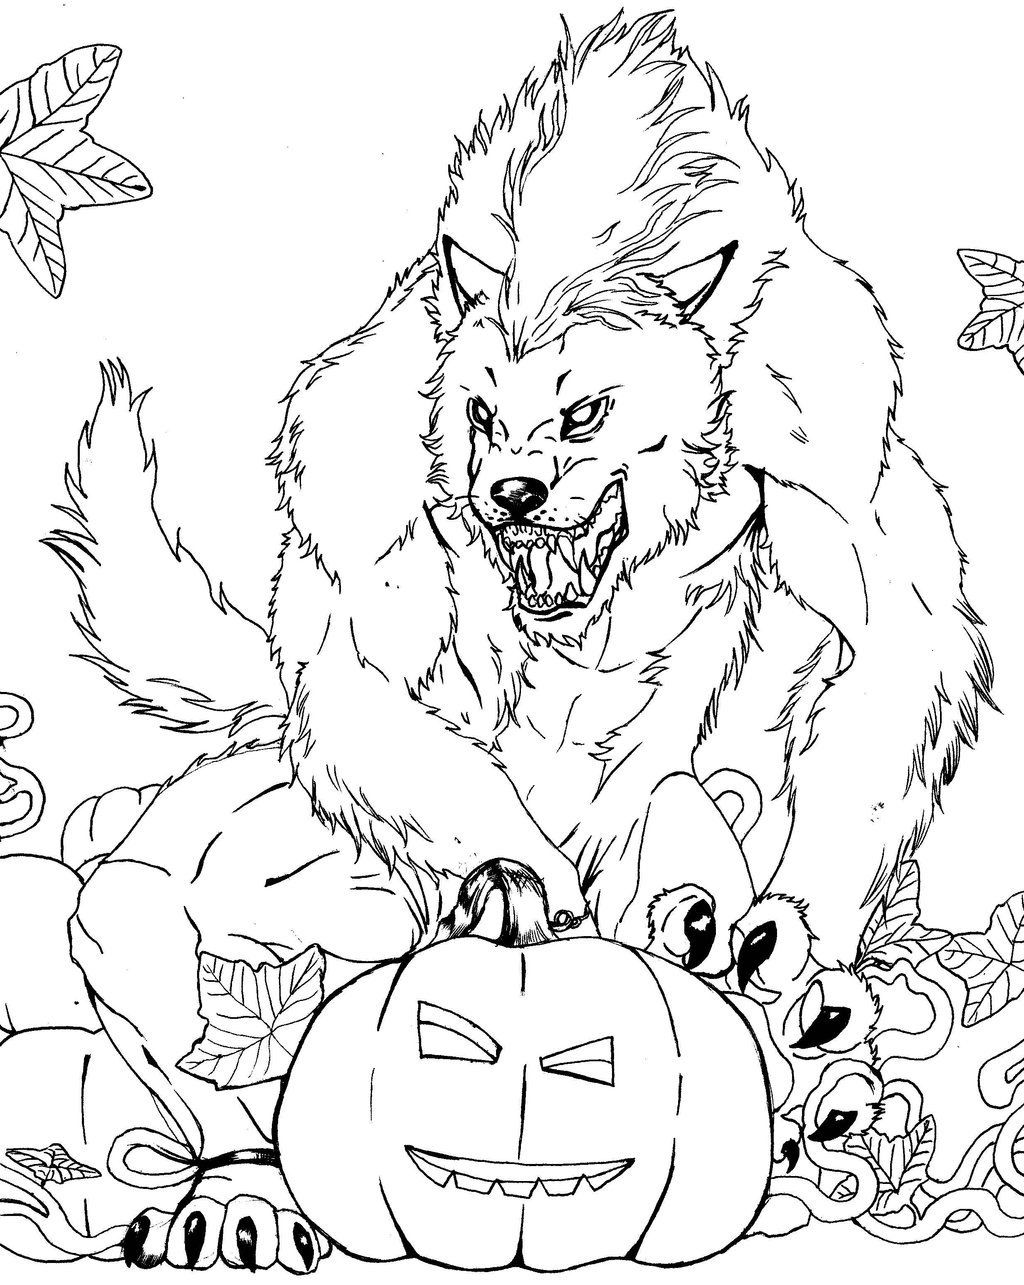 Free Werewolf Coloring Page | Lineart: Classic Movie Monsters ...